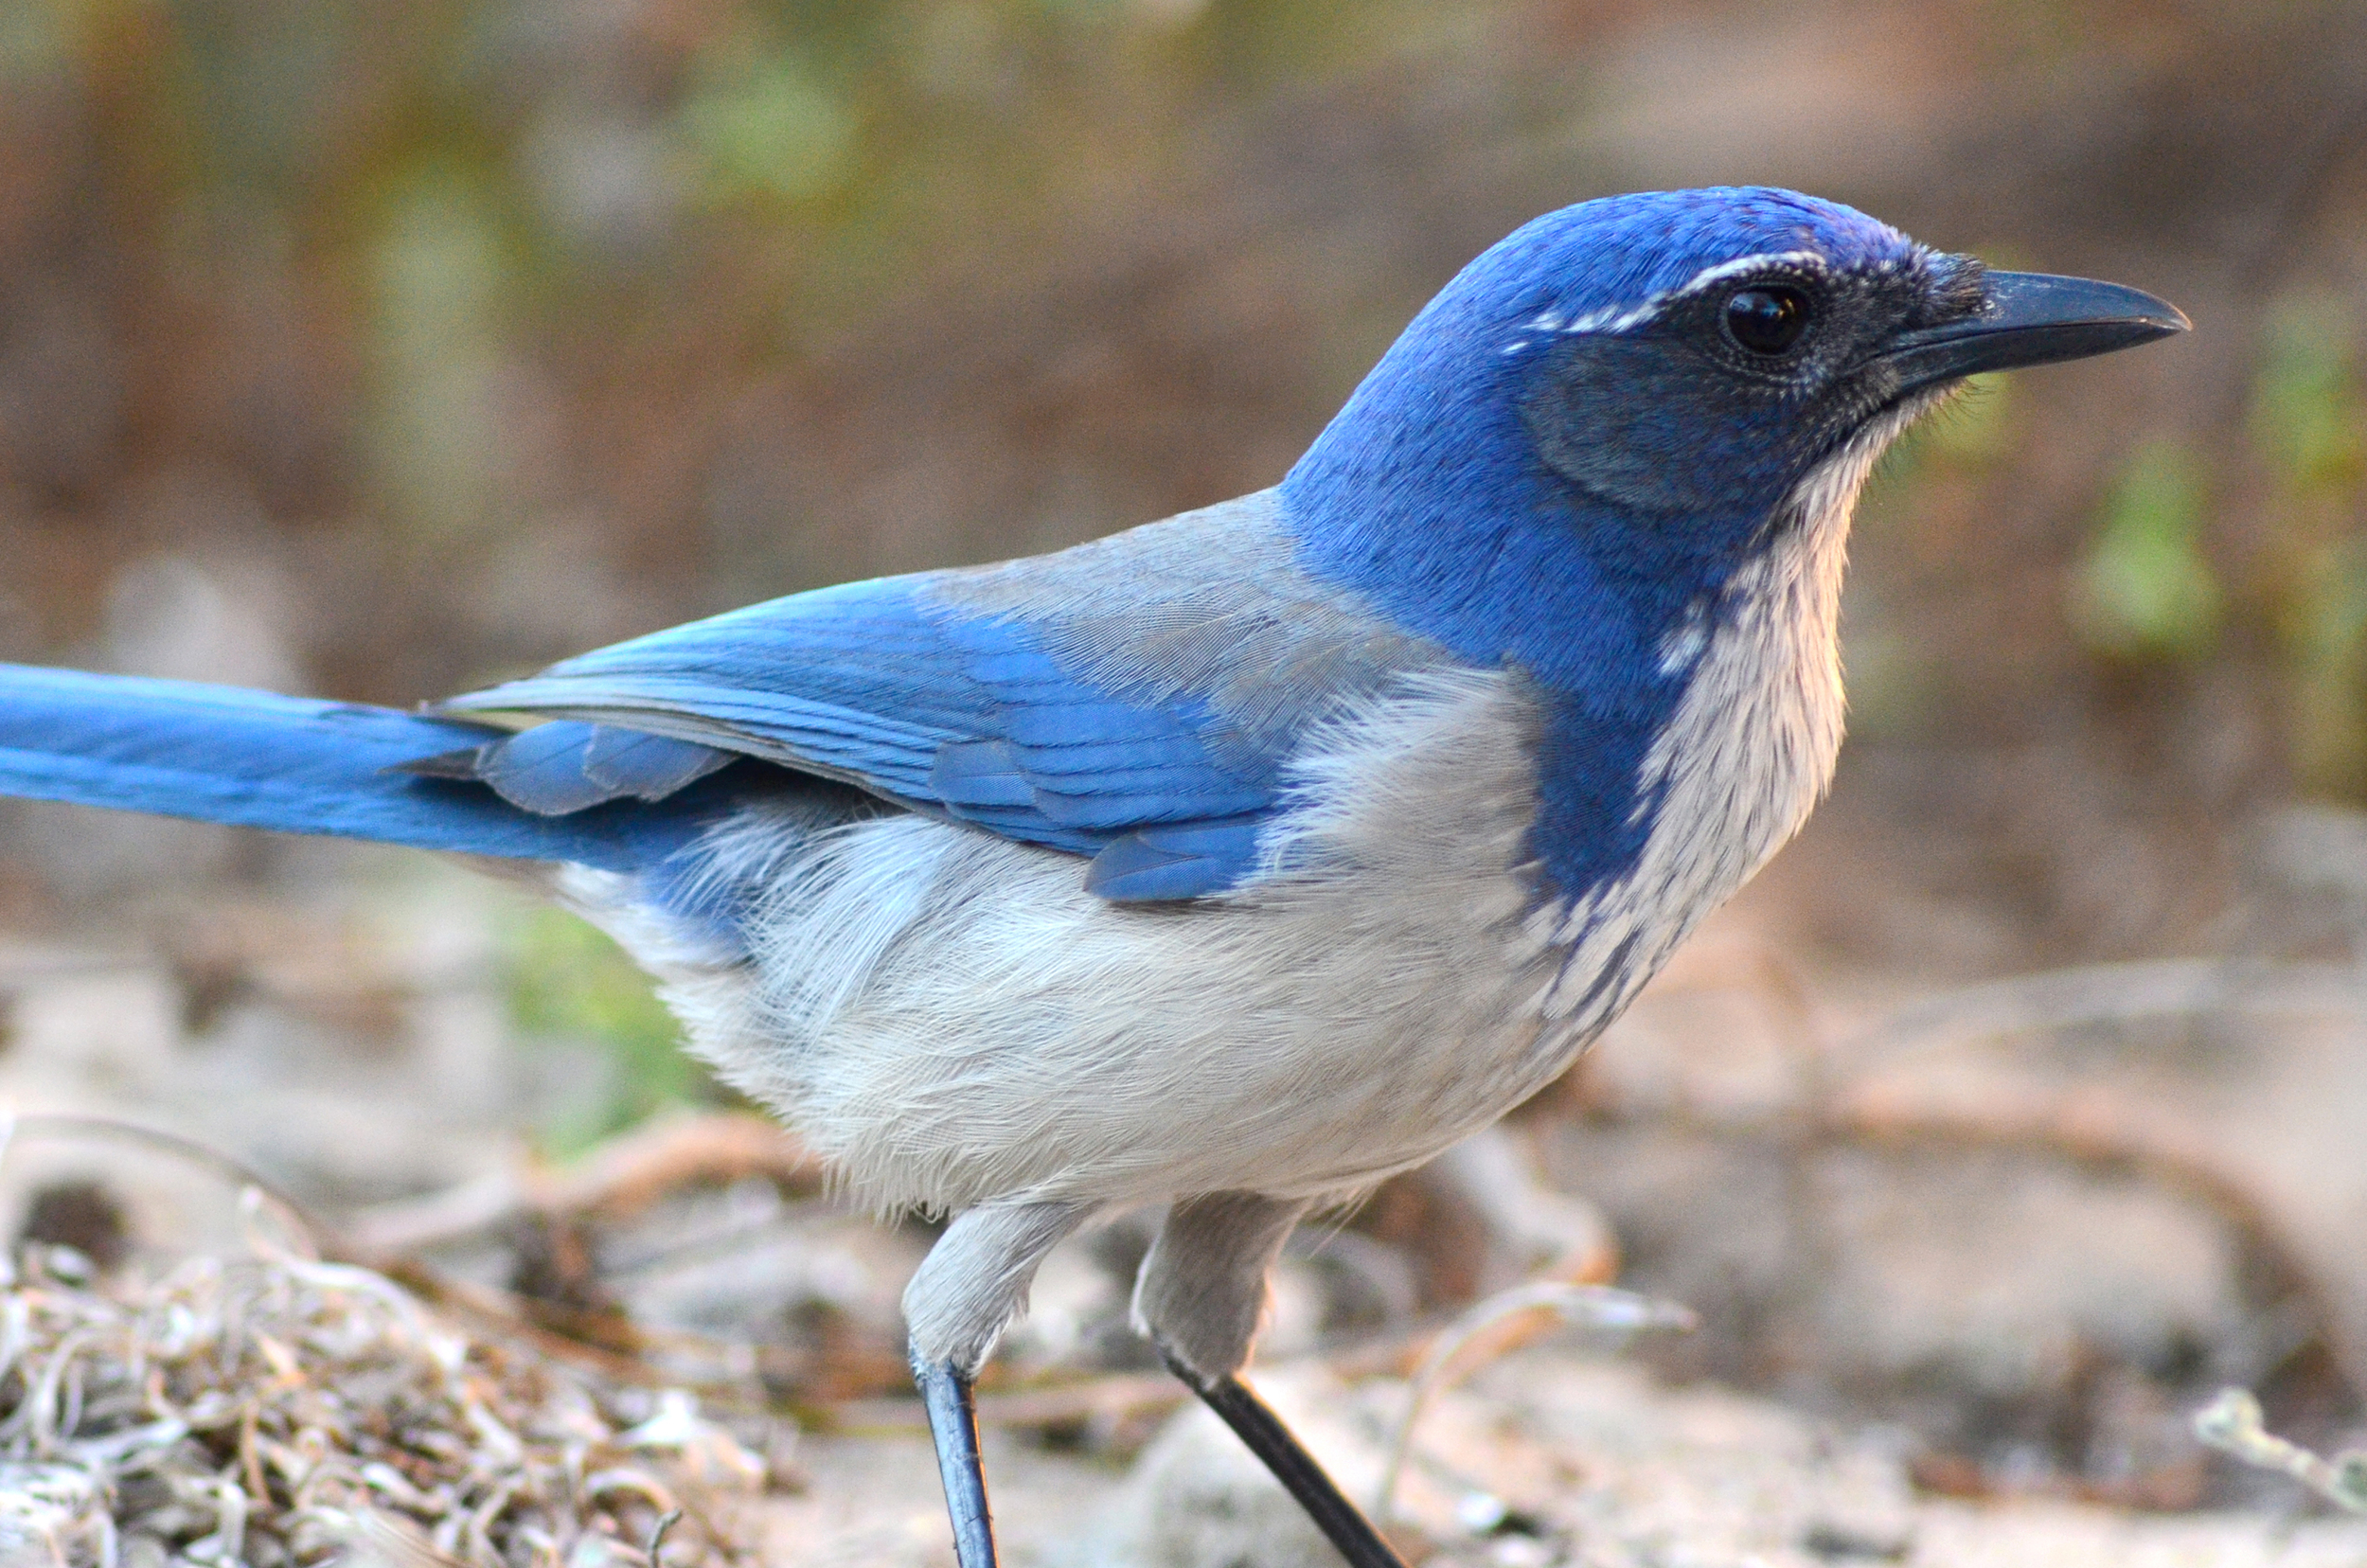 Western Scrub-Jays are among the most intelligent and charismatic members of our avifauna